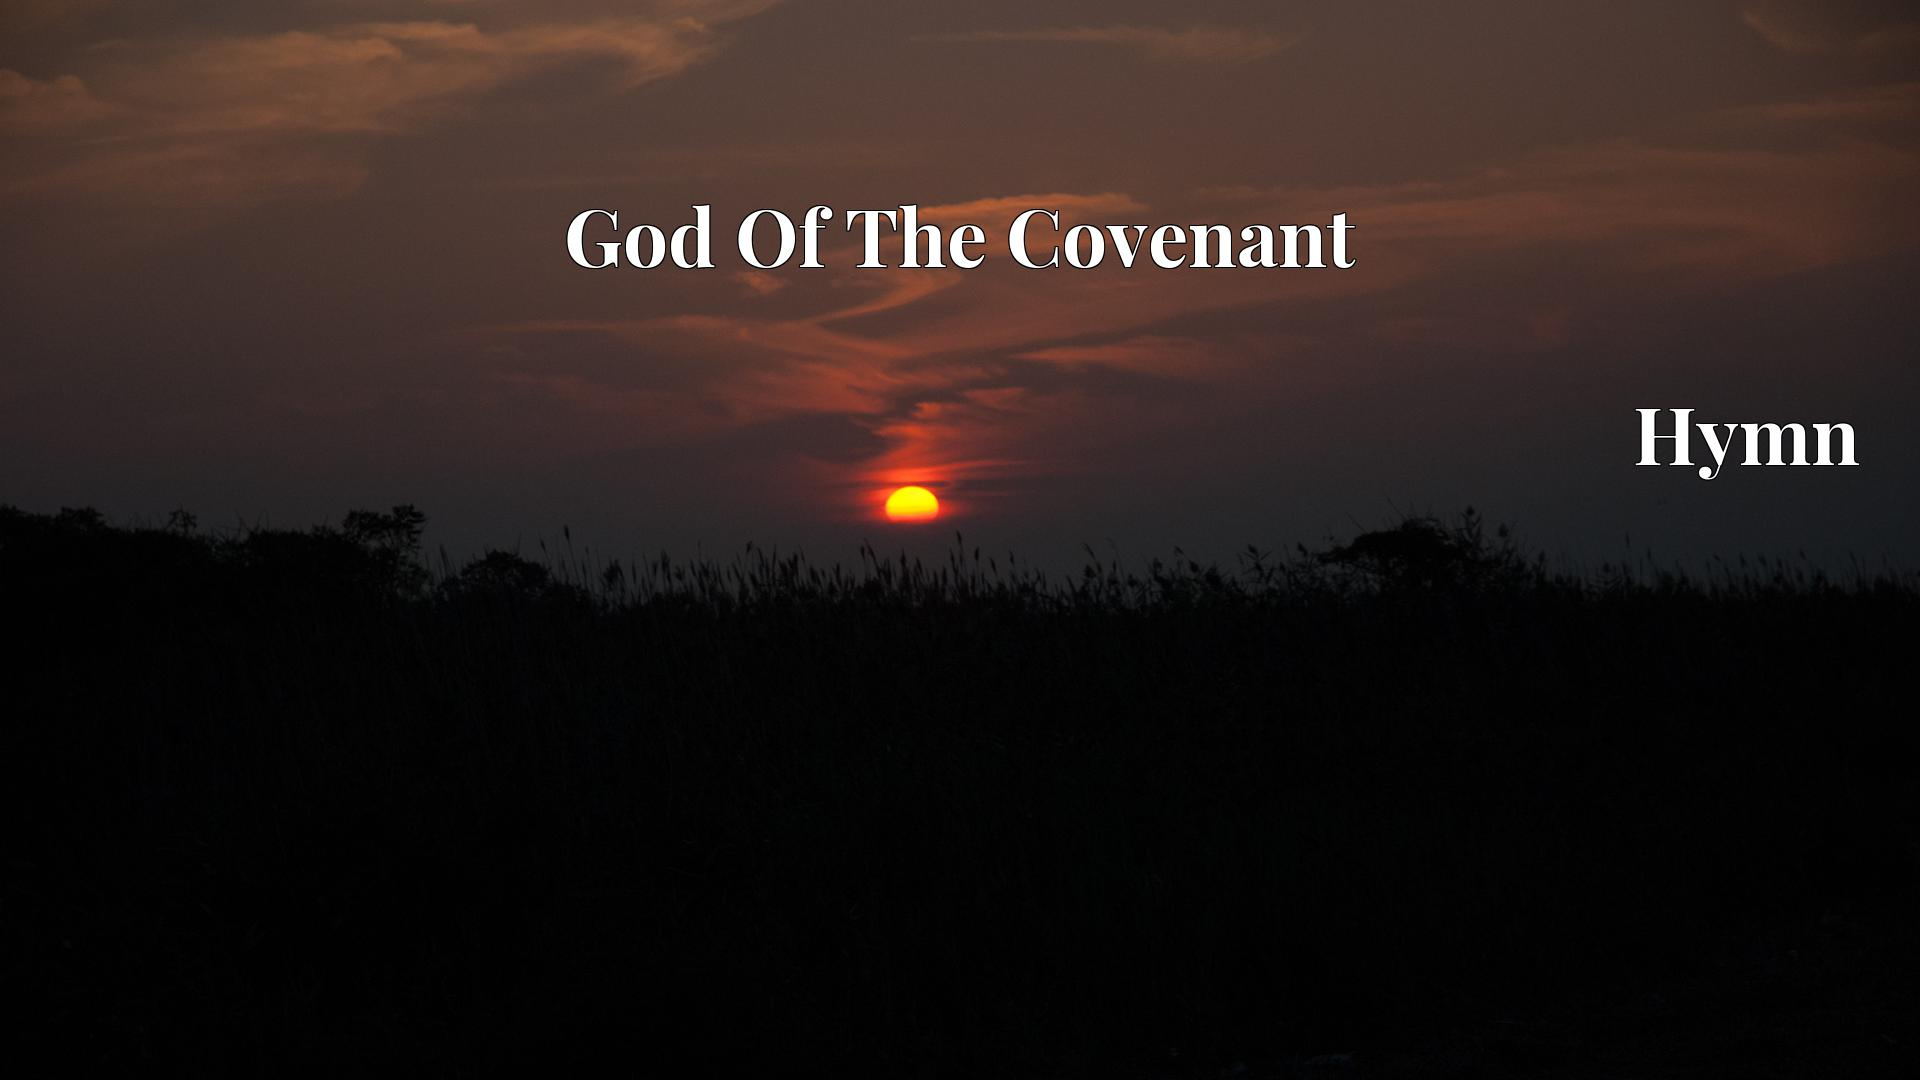 God Of The Covenant - Hymn